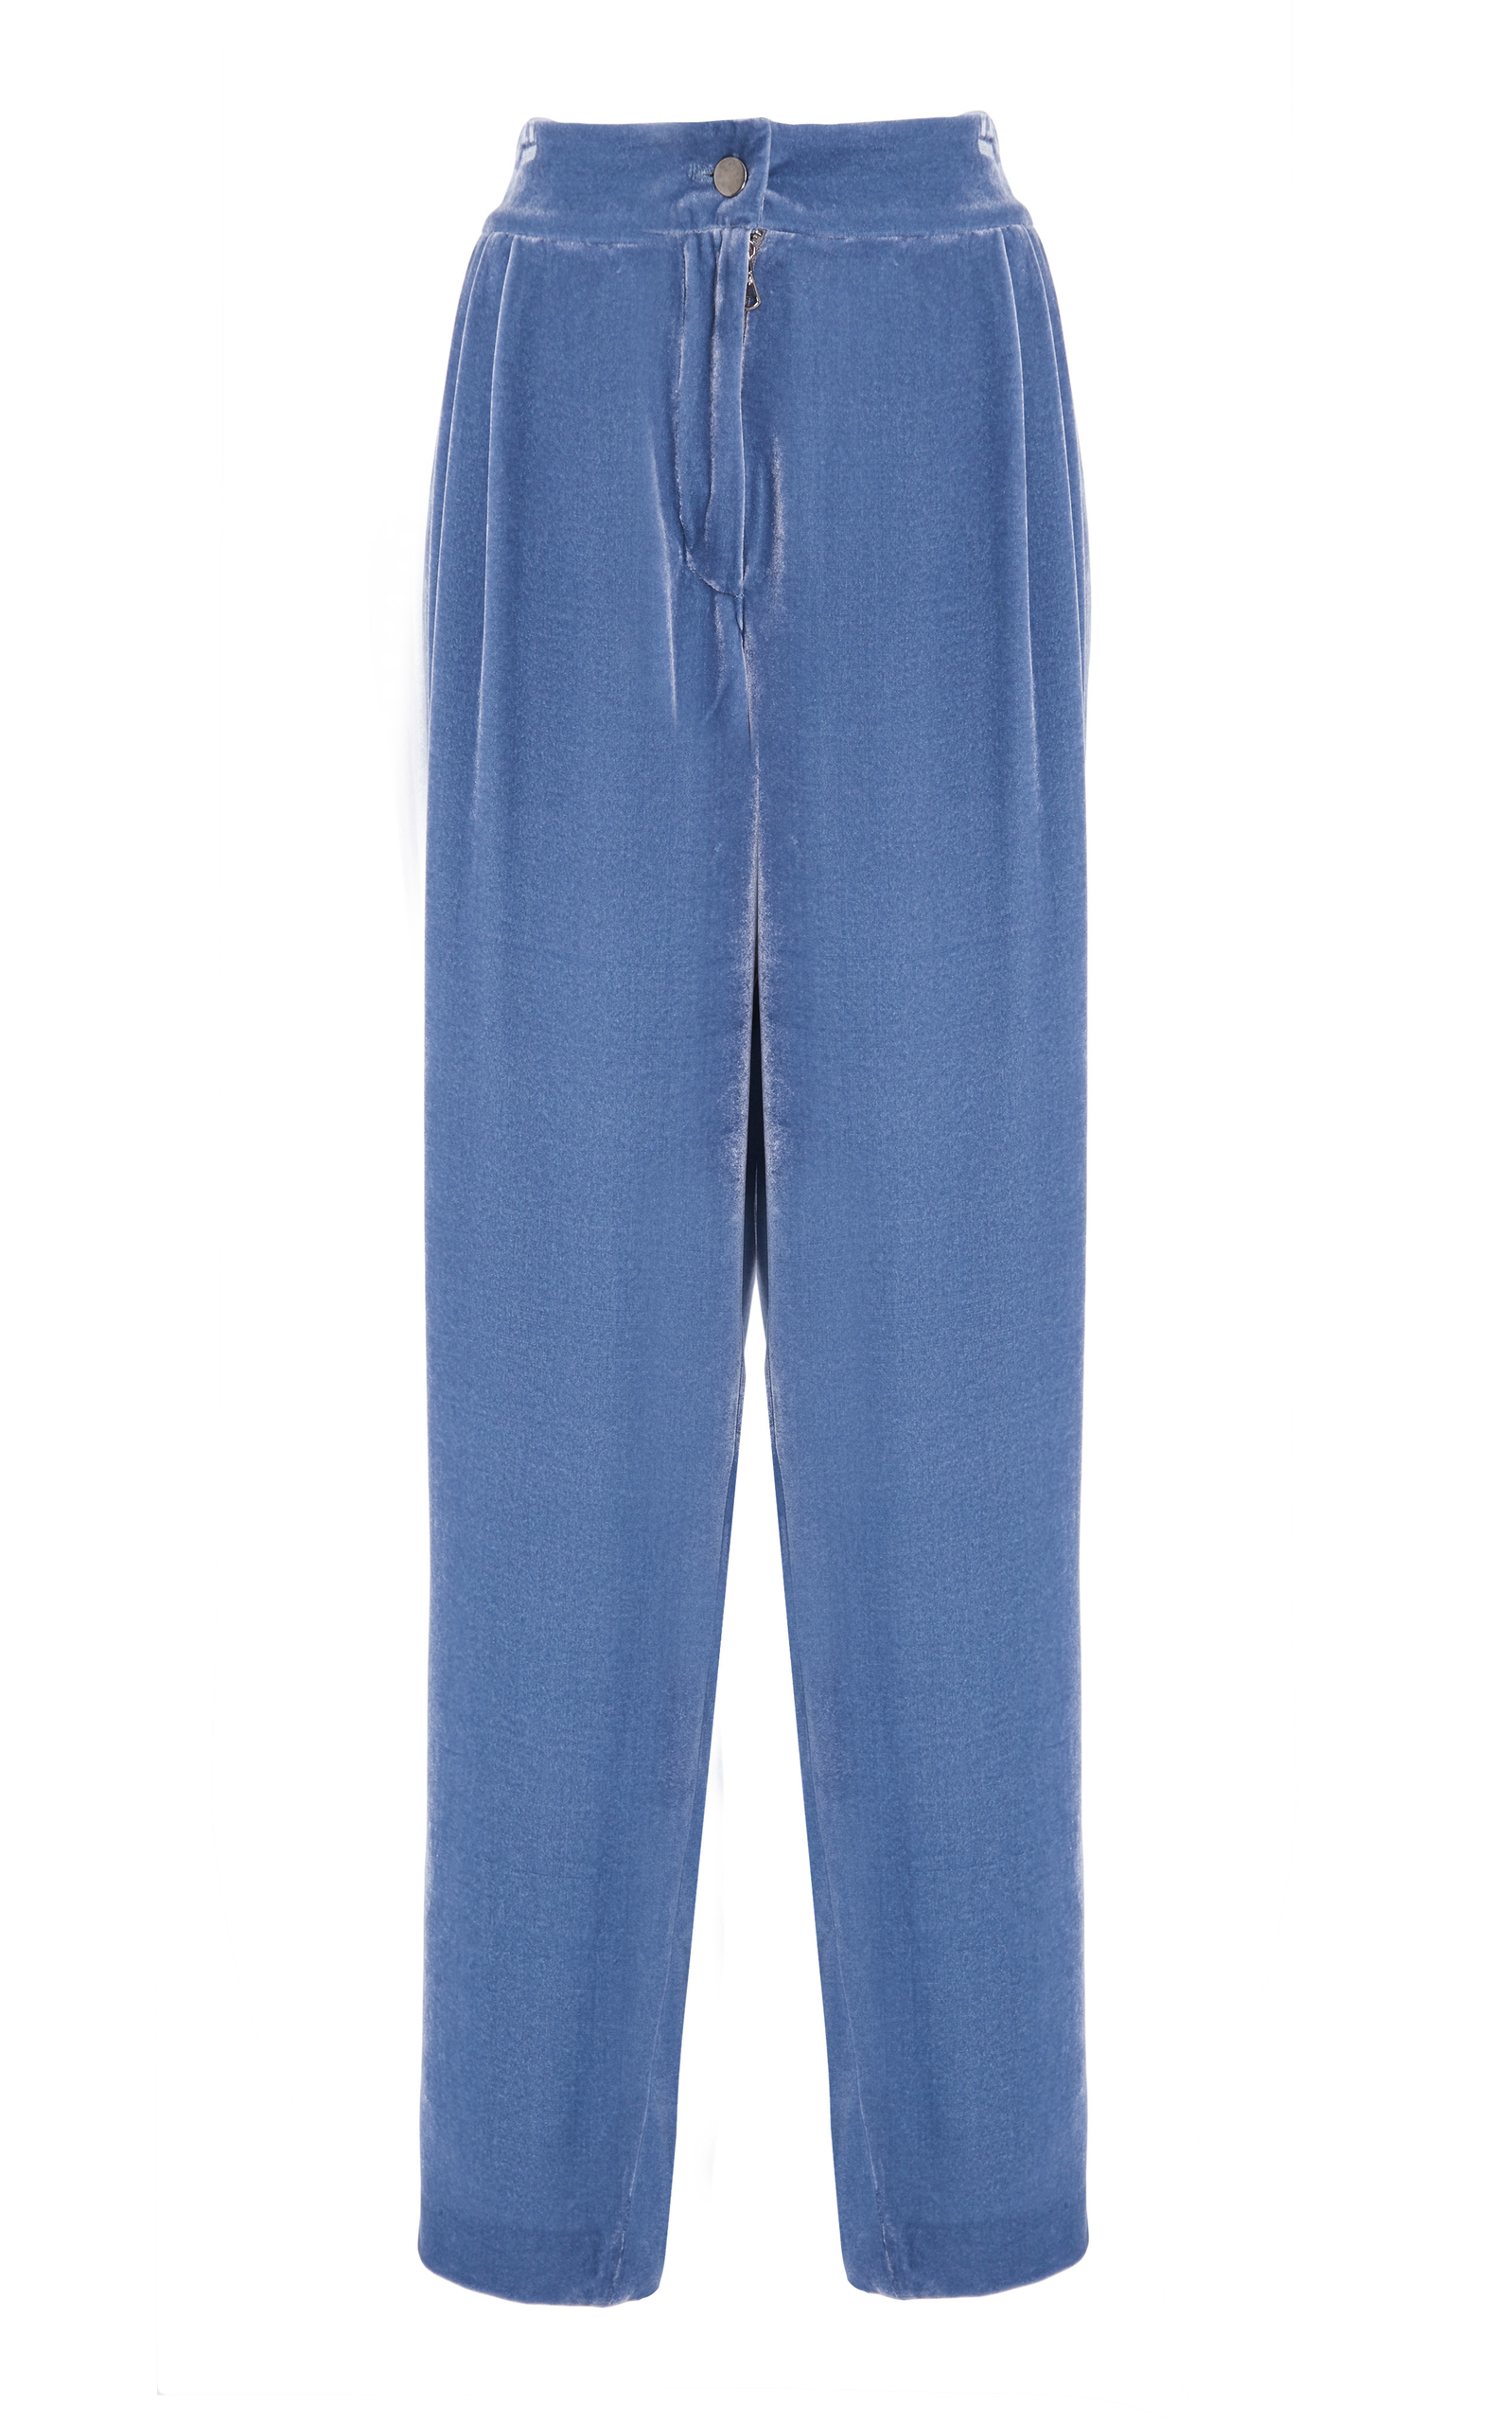 MAREI 1998 Azalea Pants in Blue